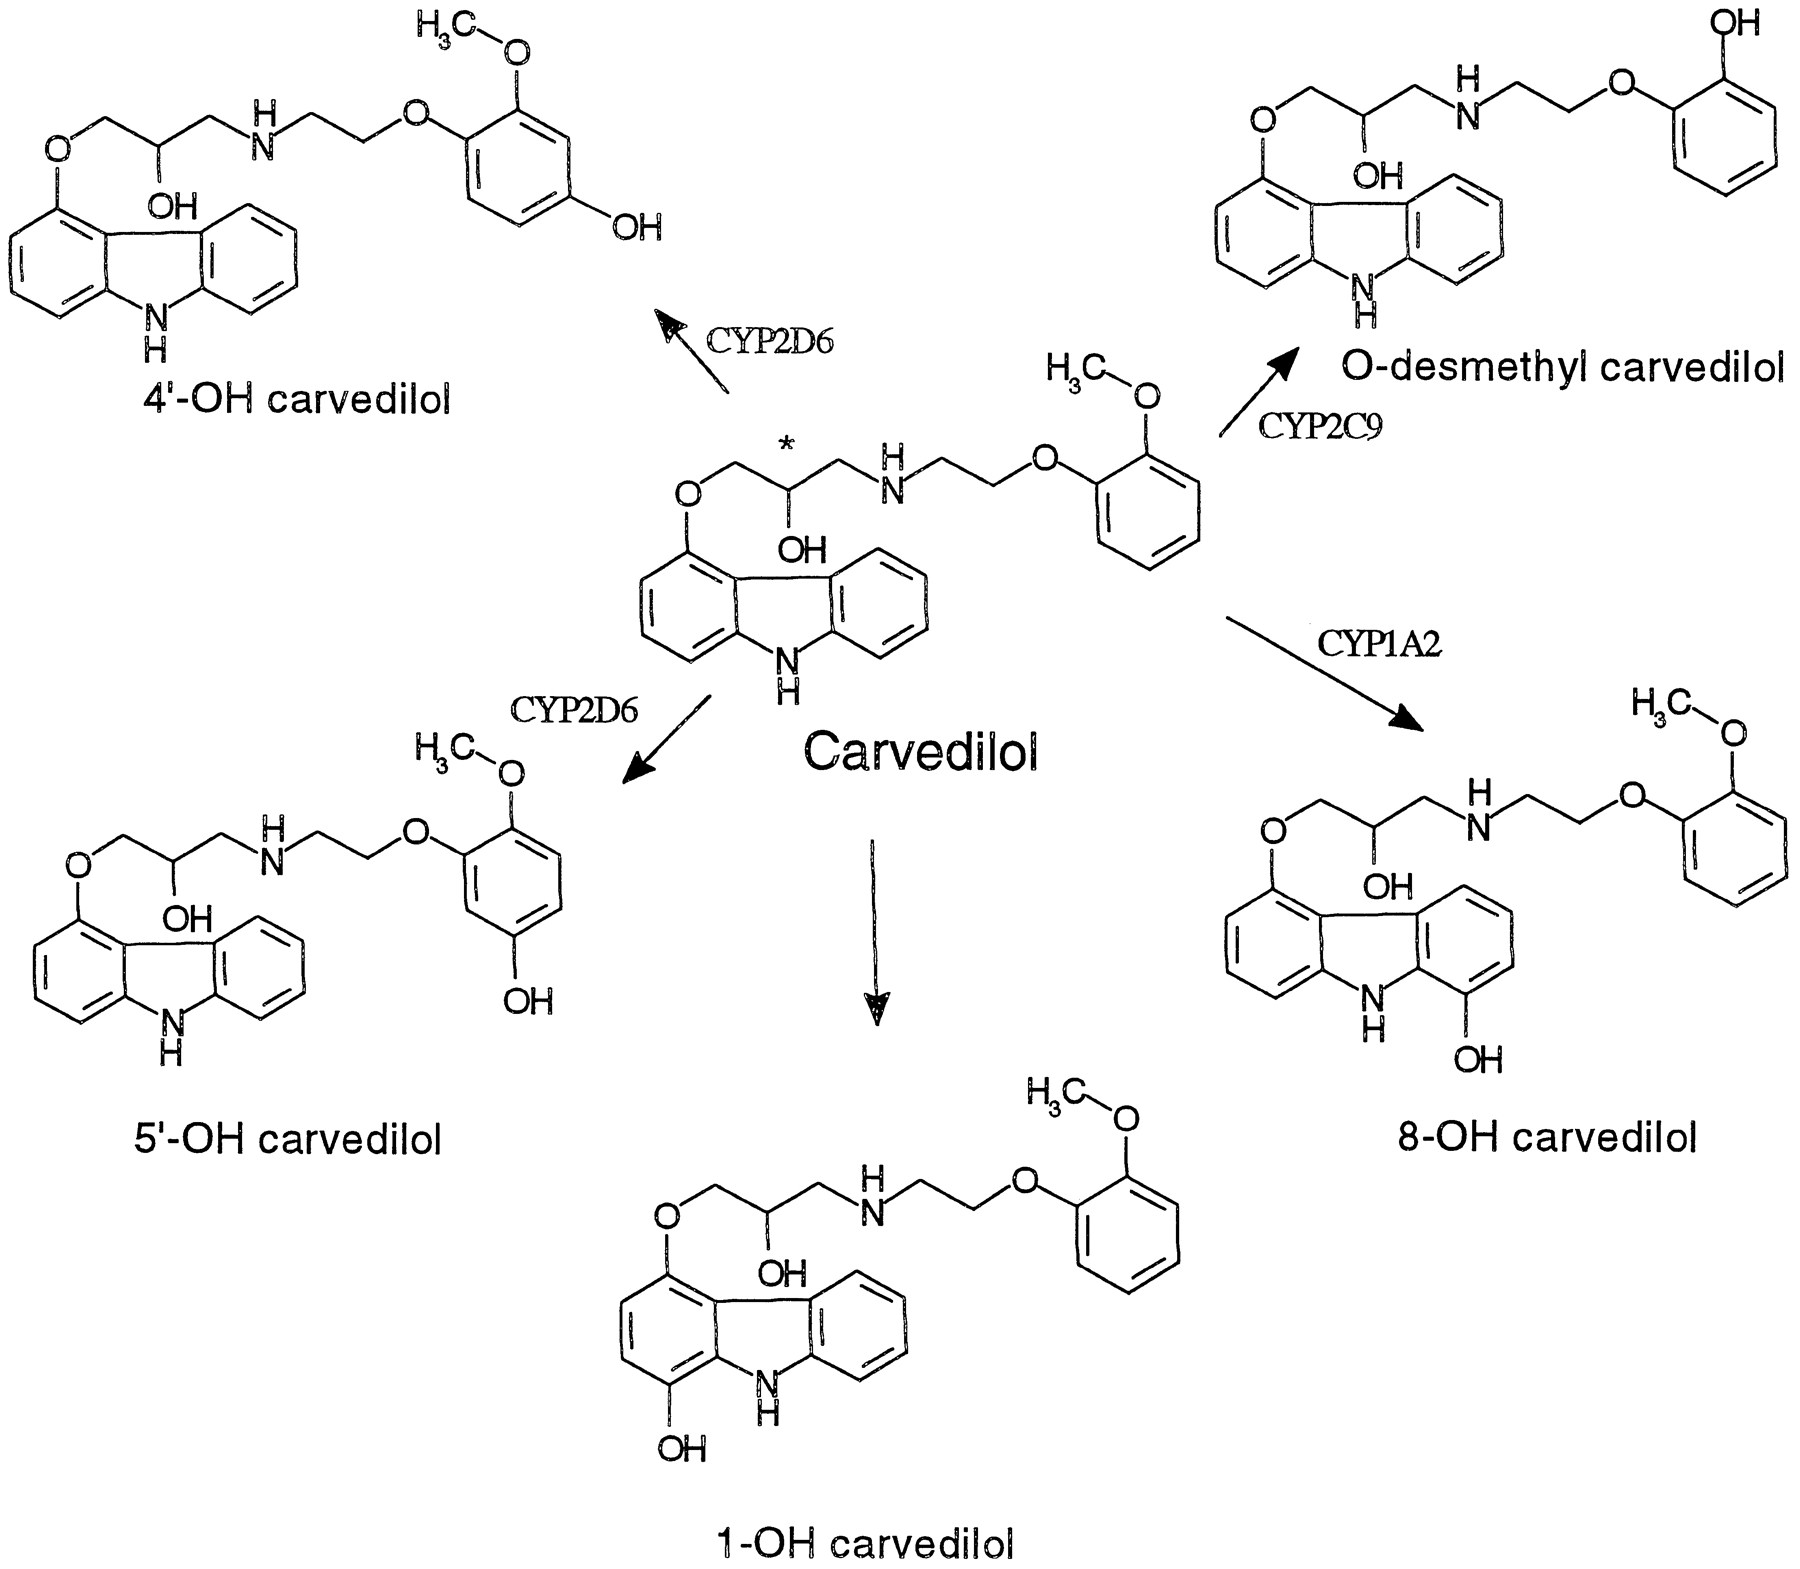 Carvedilol Oral : Uses, Side Effects, Interactions ...